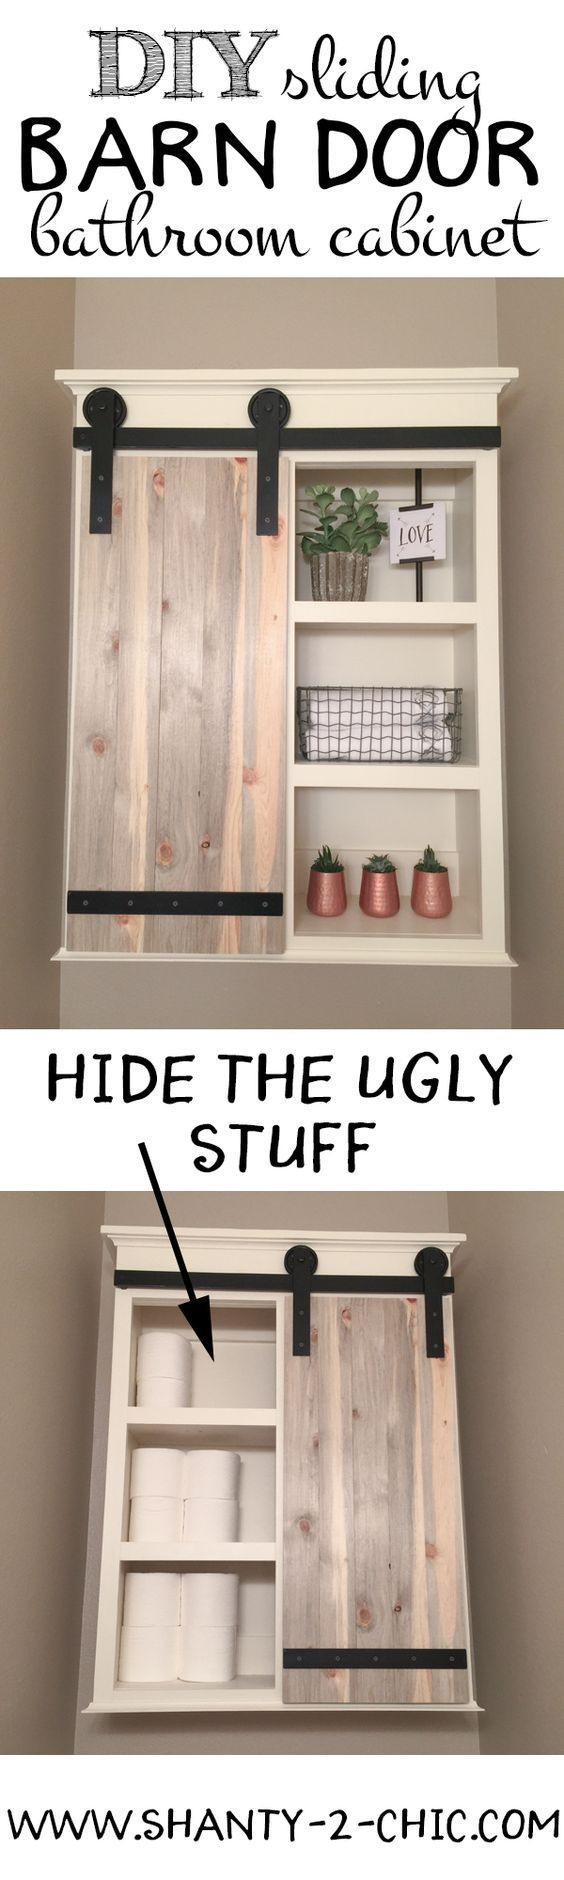 Diy Kids Bathroom Decor best 25+ diy bathroom decor ideas only on pinterest | bathroom